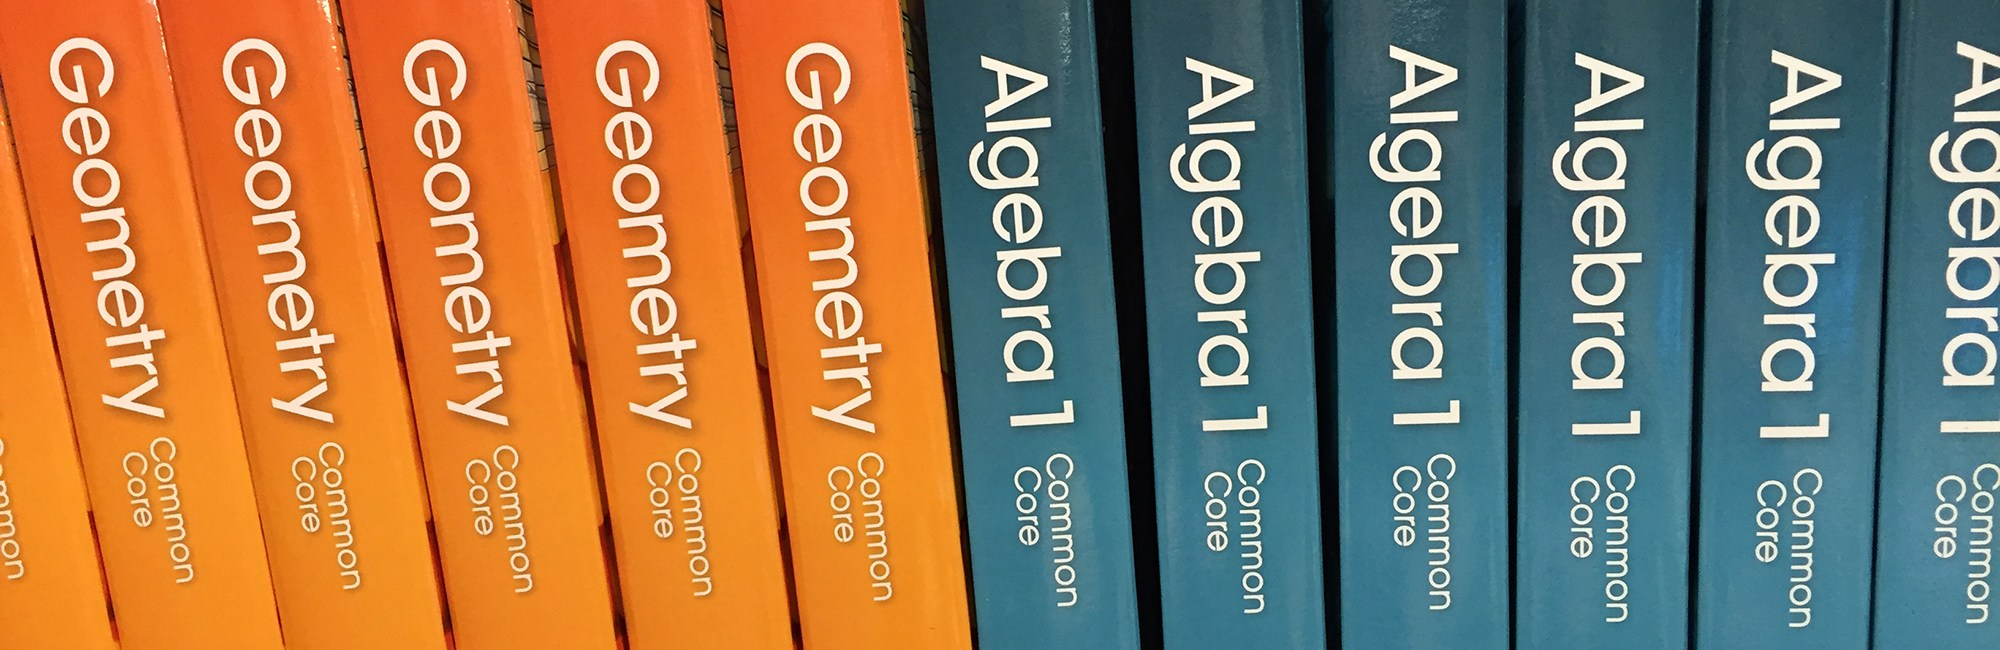 Geometry and Algebra textbooks